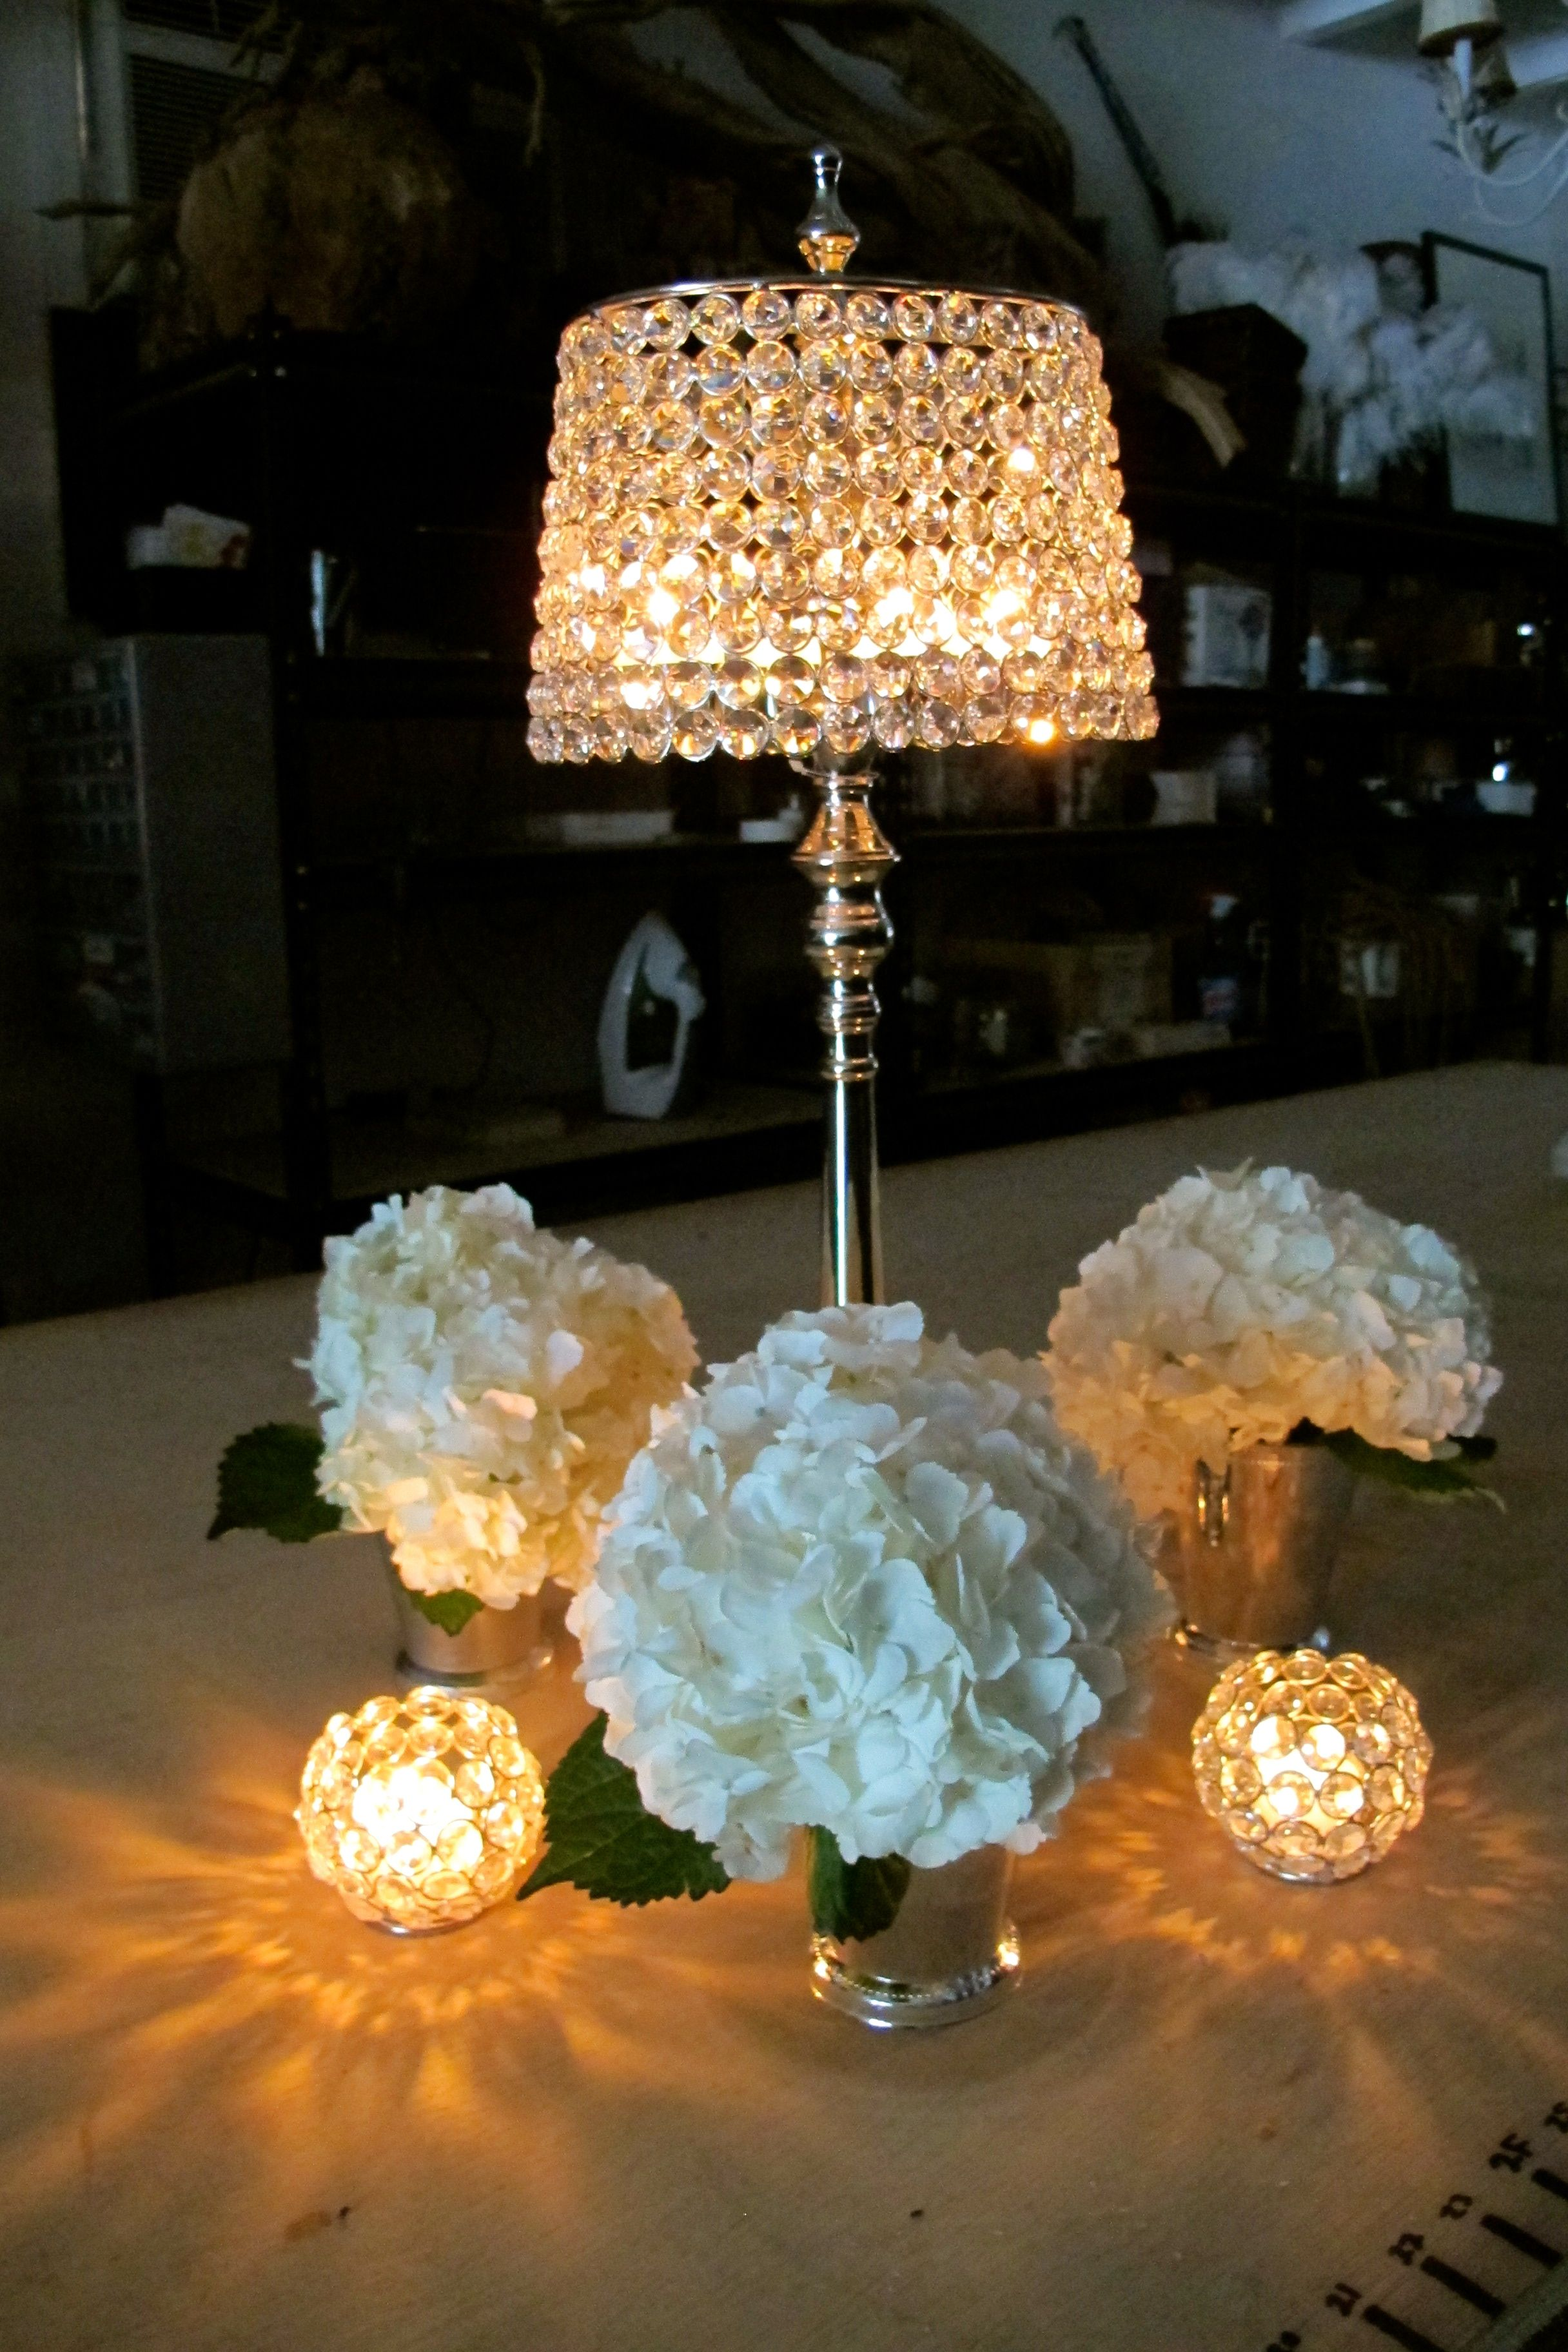 Bling Out Your Centerpiece With This Bejeweled Candle Holder